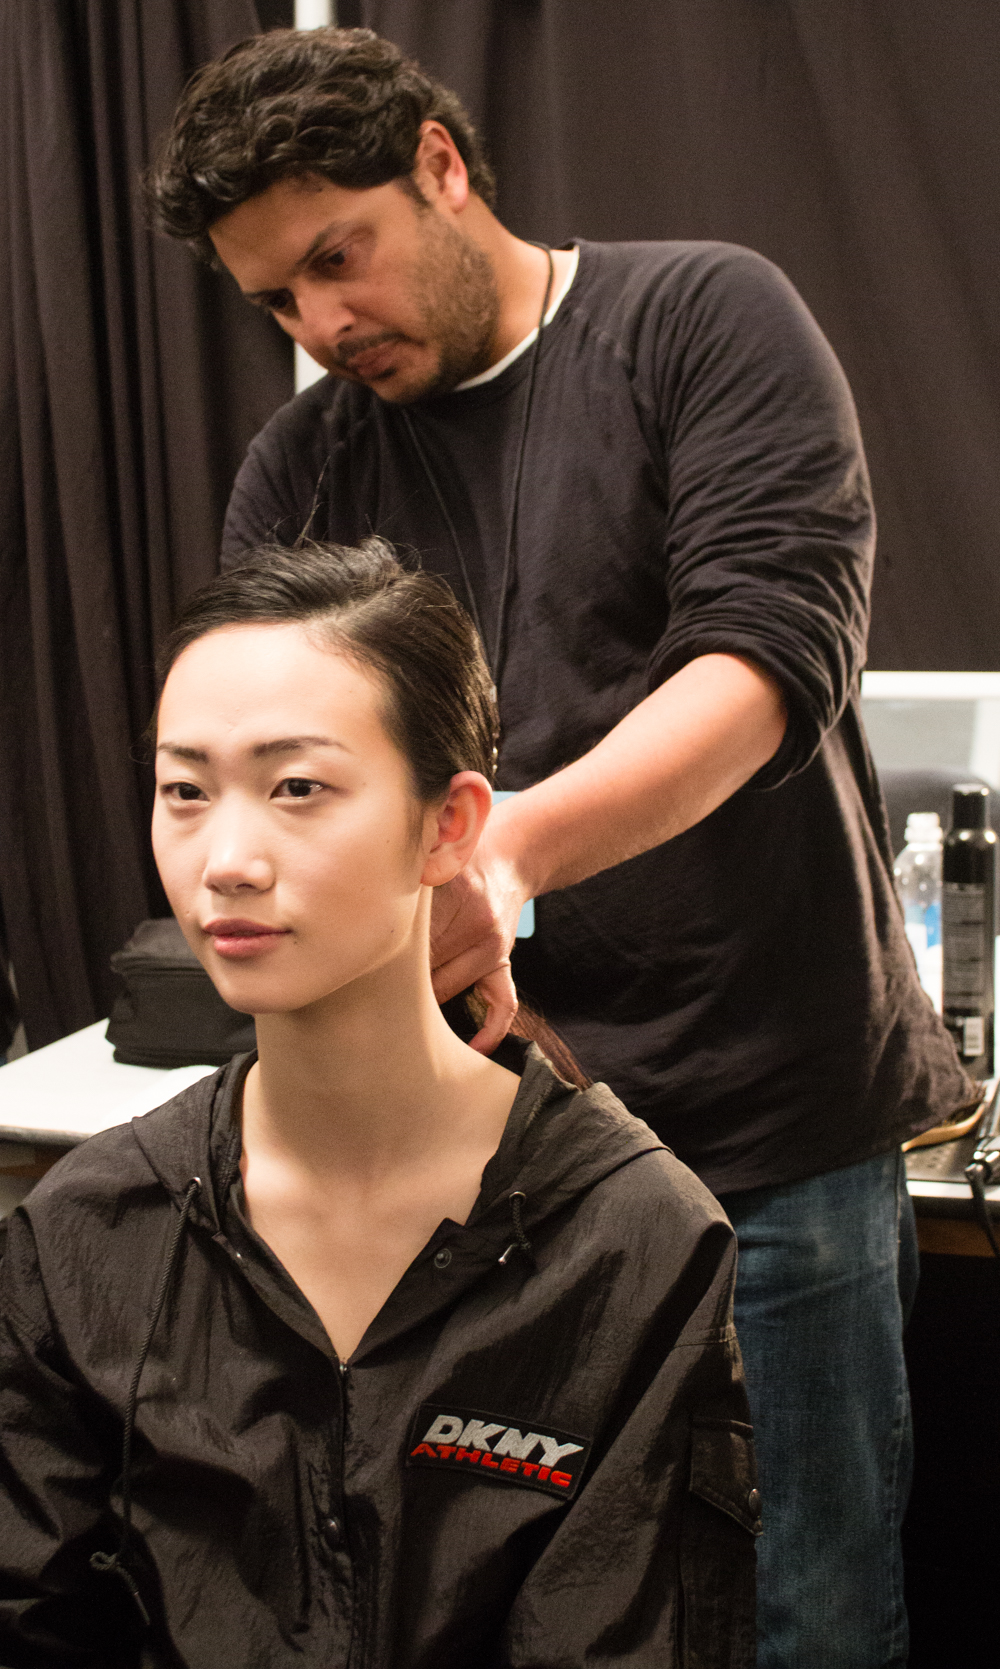 Backstage at Mercedes-Benz Fashion Week in NYC